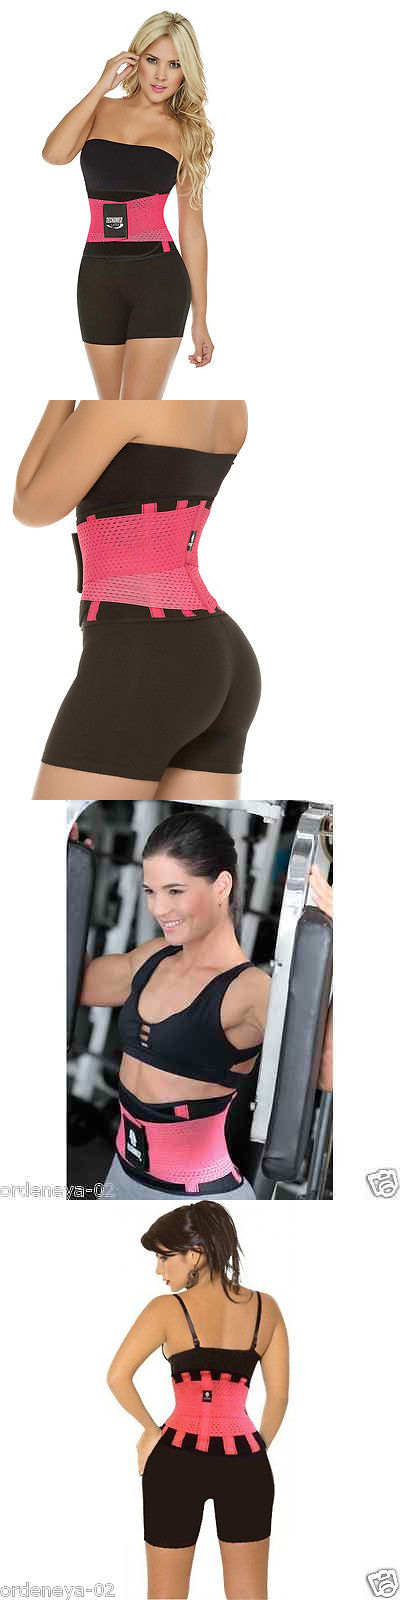 6067e18337a Shapewear 11530  Tecnomed 70-30 Pink Fitness Thermo Shaper Original  Cinturilla Xtreme Miss Belt -  BUY IT NOW ONLY   35.68 on eBay!